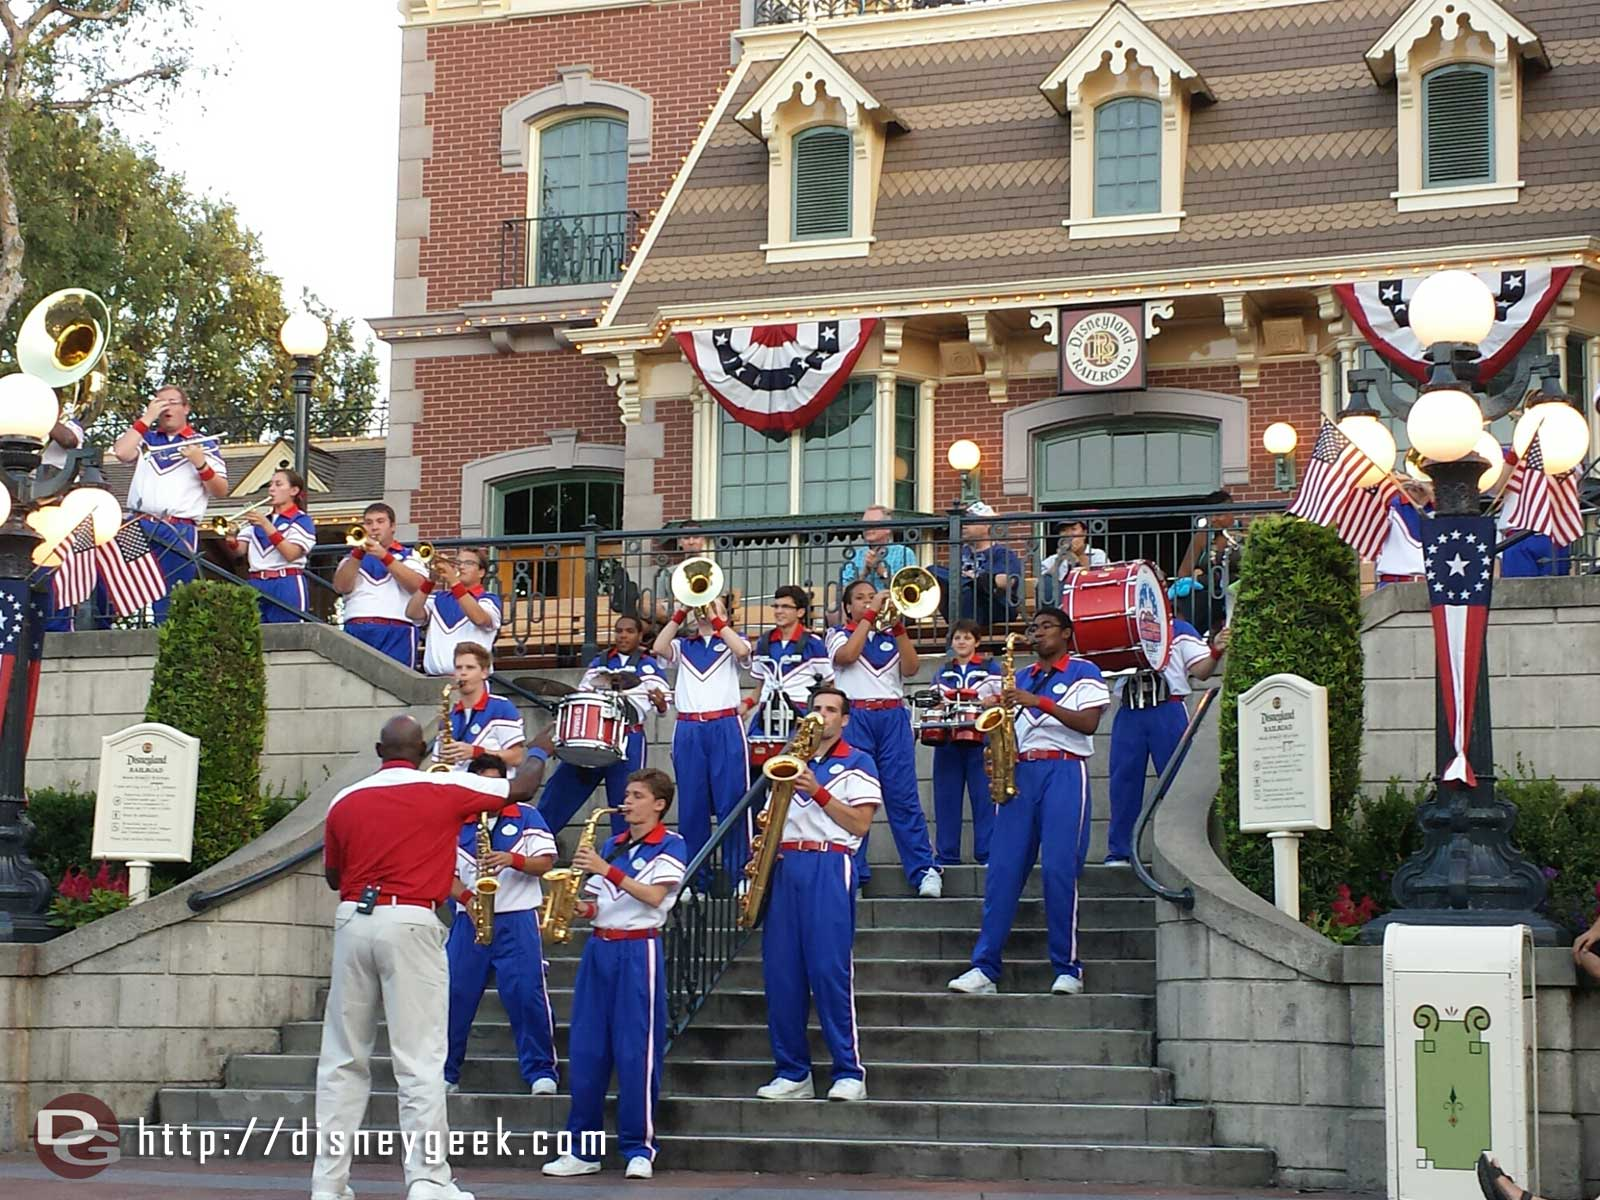 Only one more week to catch the 2014 #Disneyland All-American College Band performing Bubbles was a Cheerleader